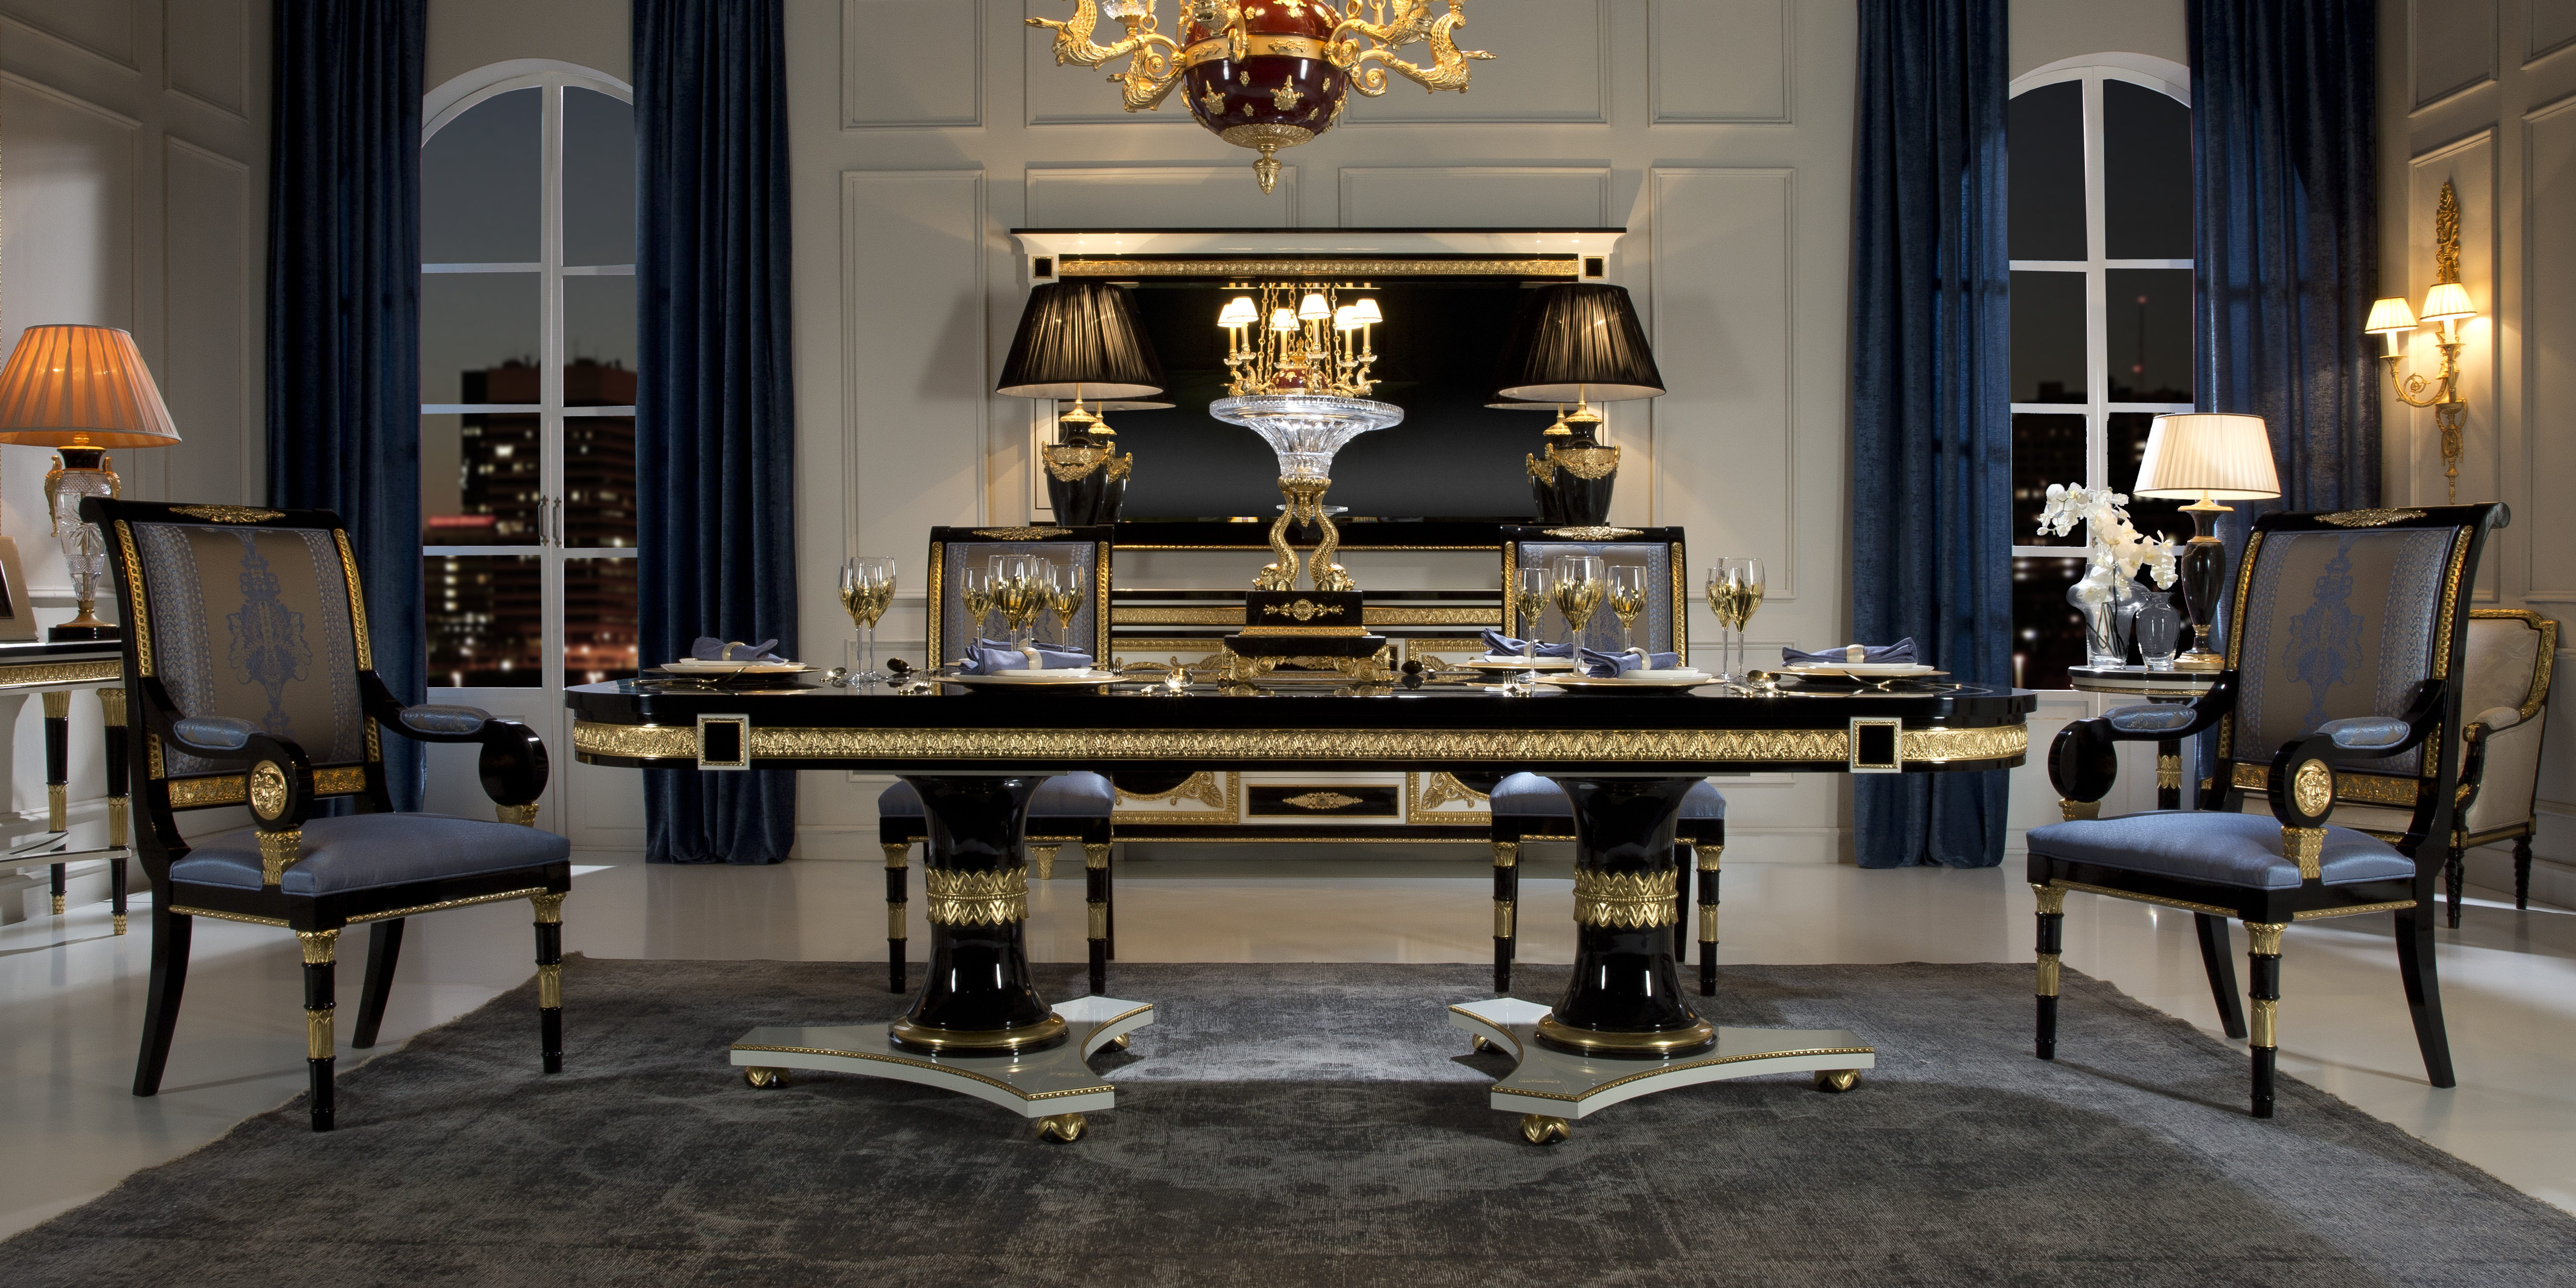 Luxury Furniture And Lighting Presents Neoclical Style